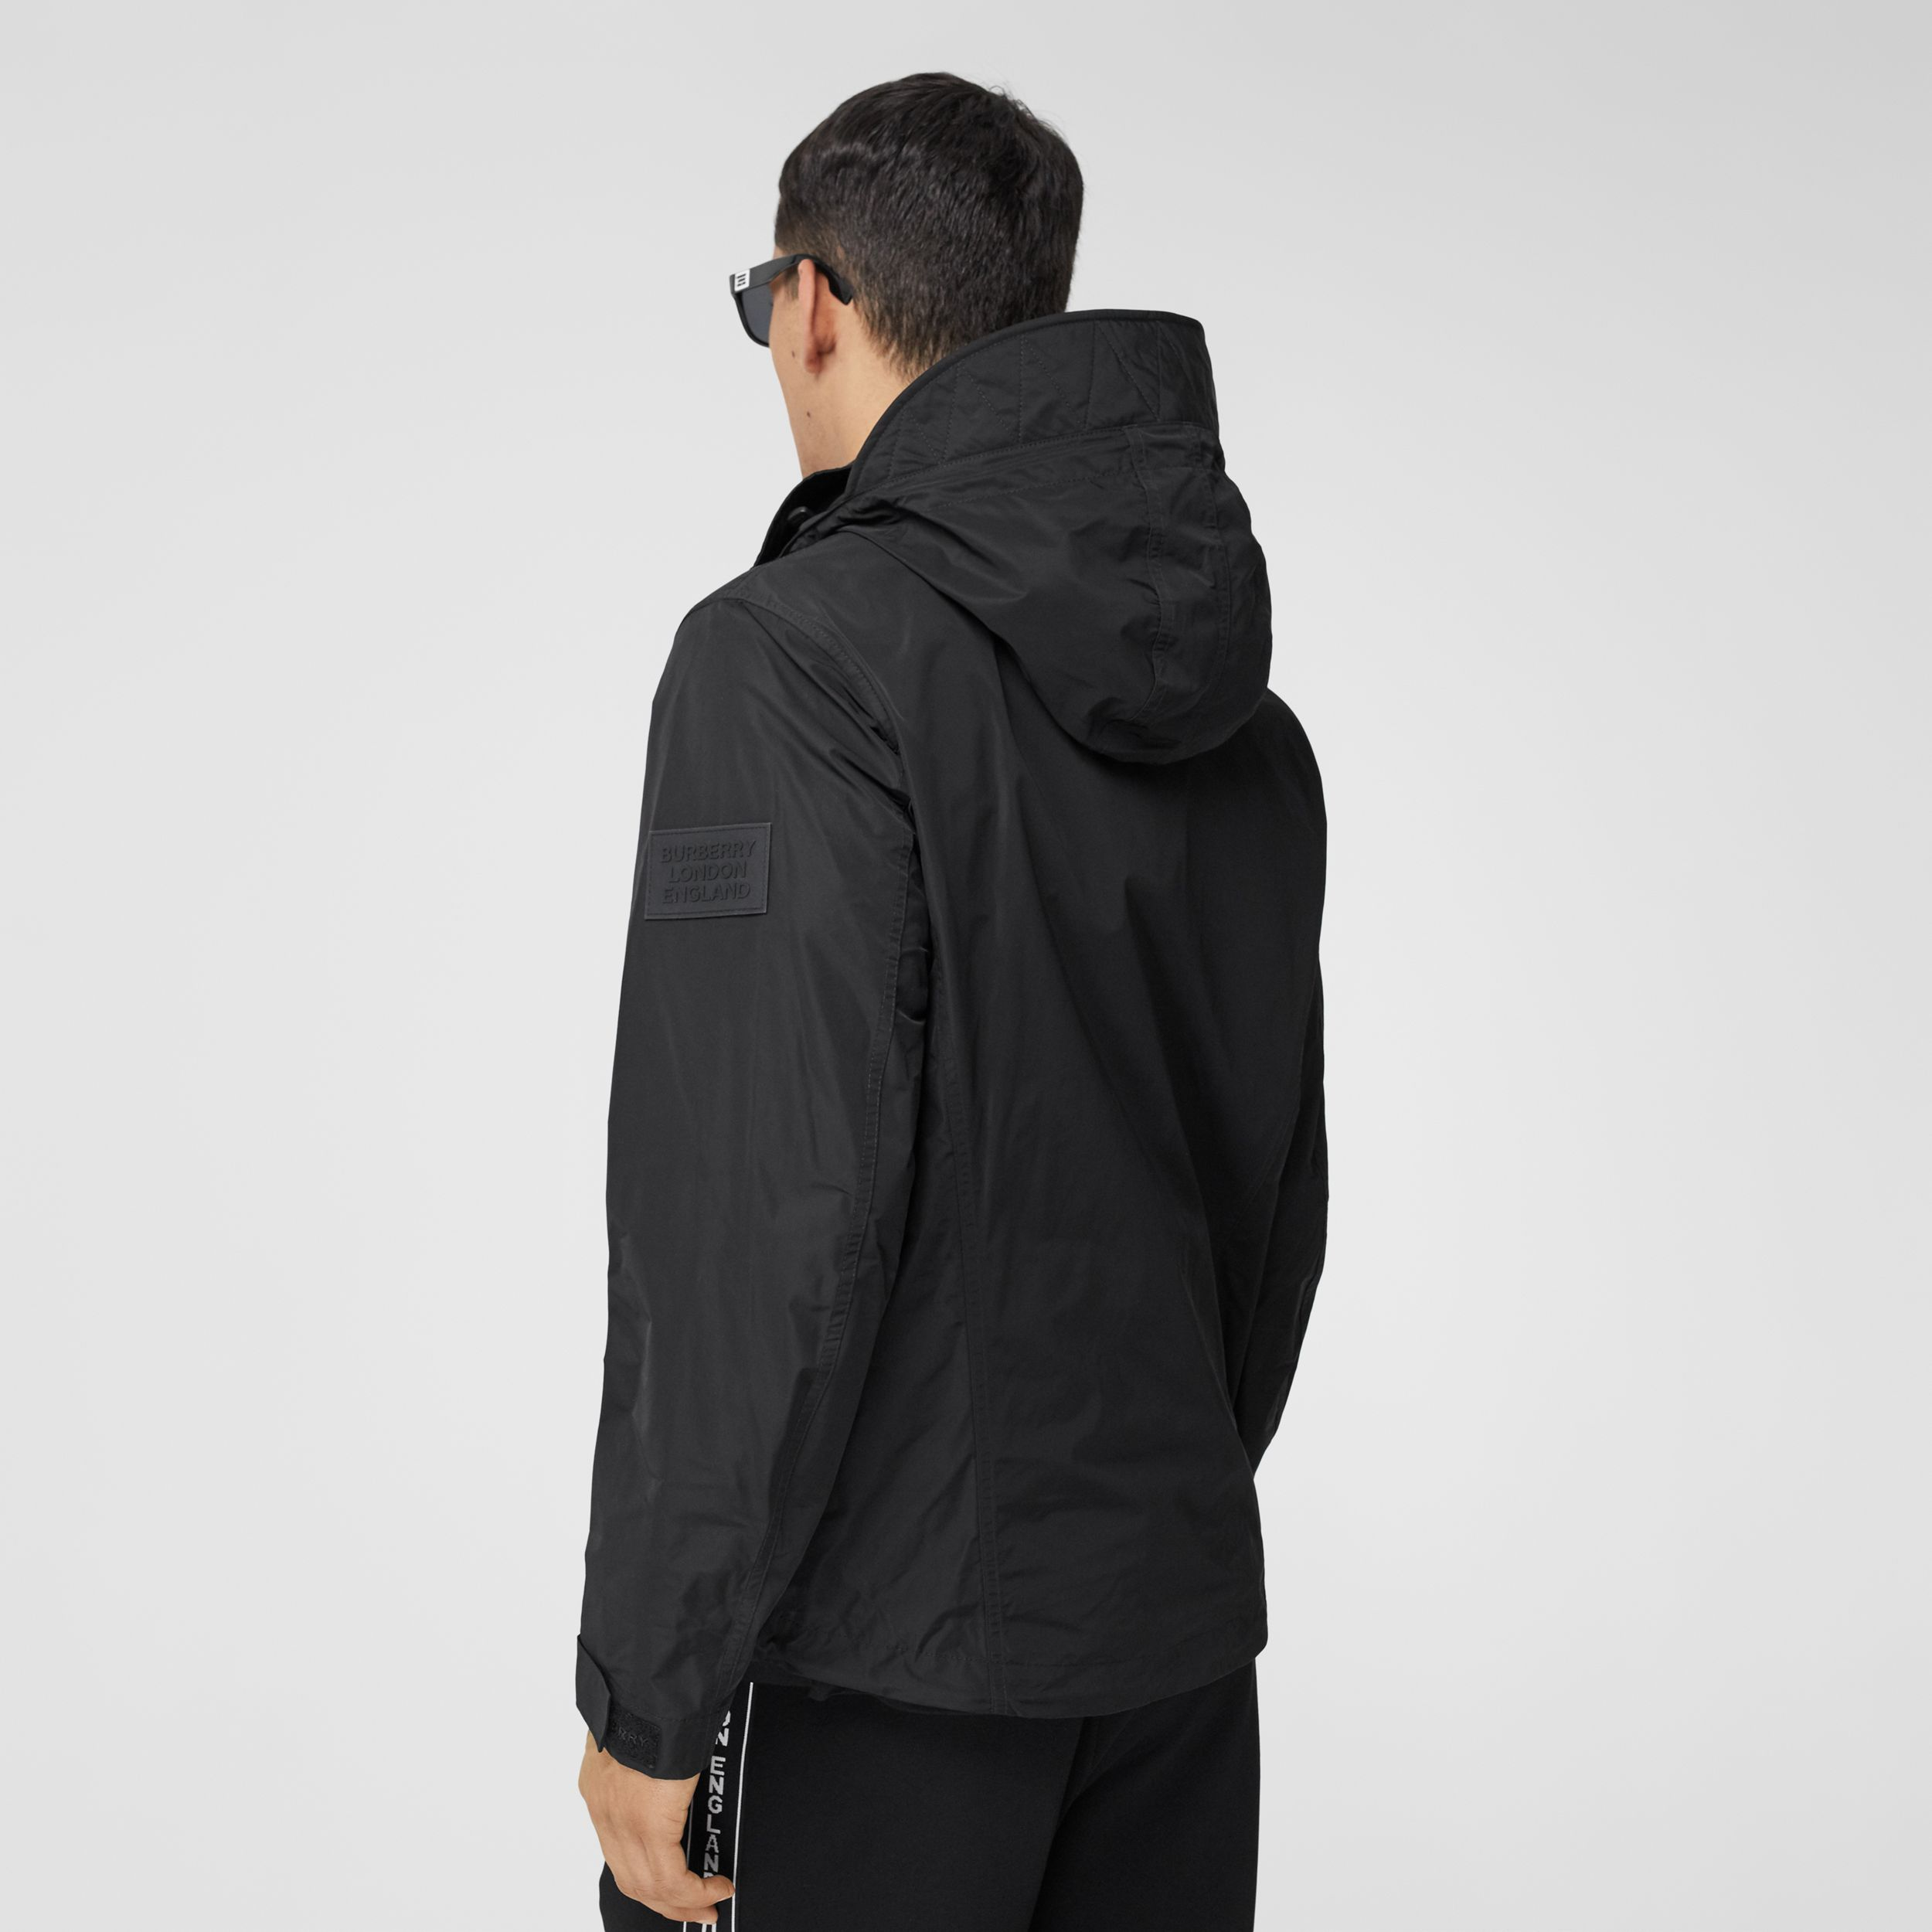 Packaway Hood Shape-memory Taffeta Jacket in Black - Men | Burberry - 3